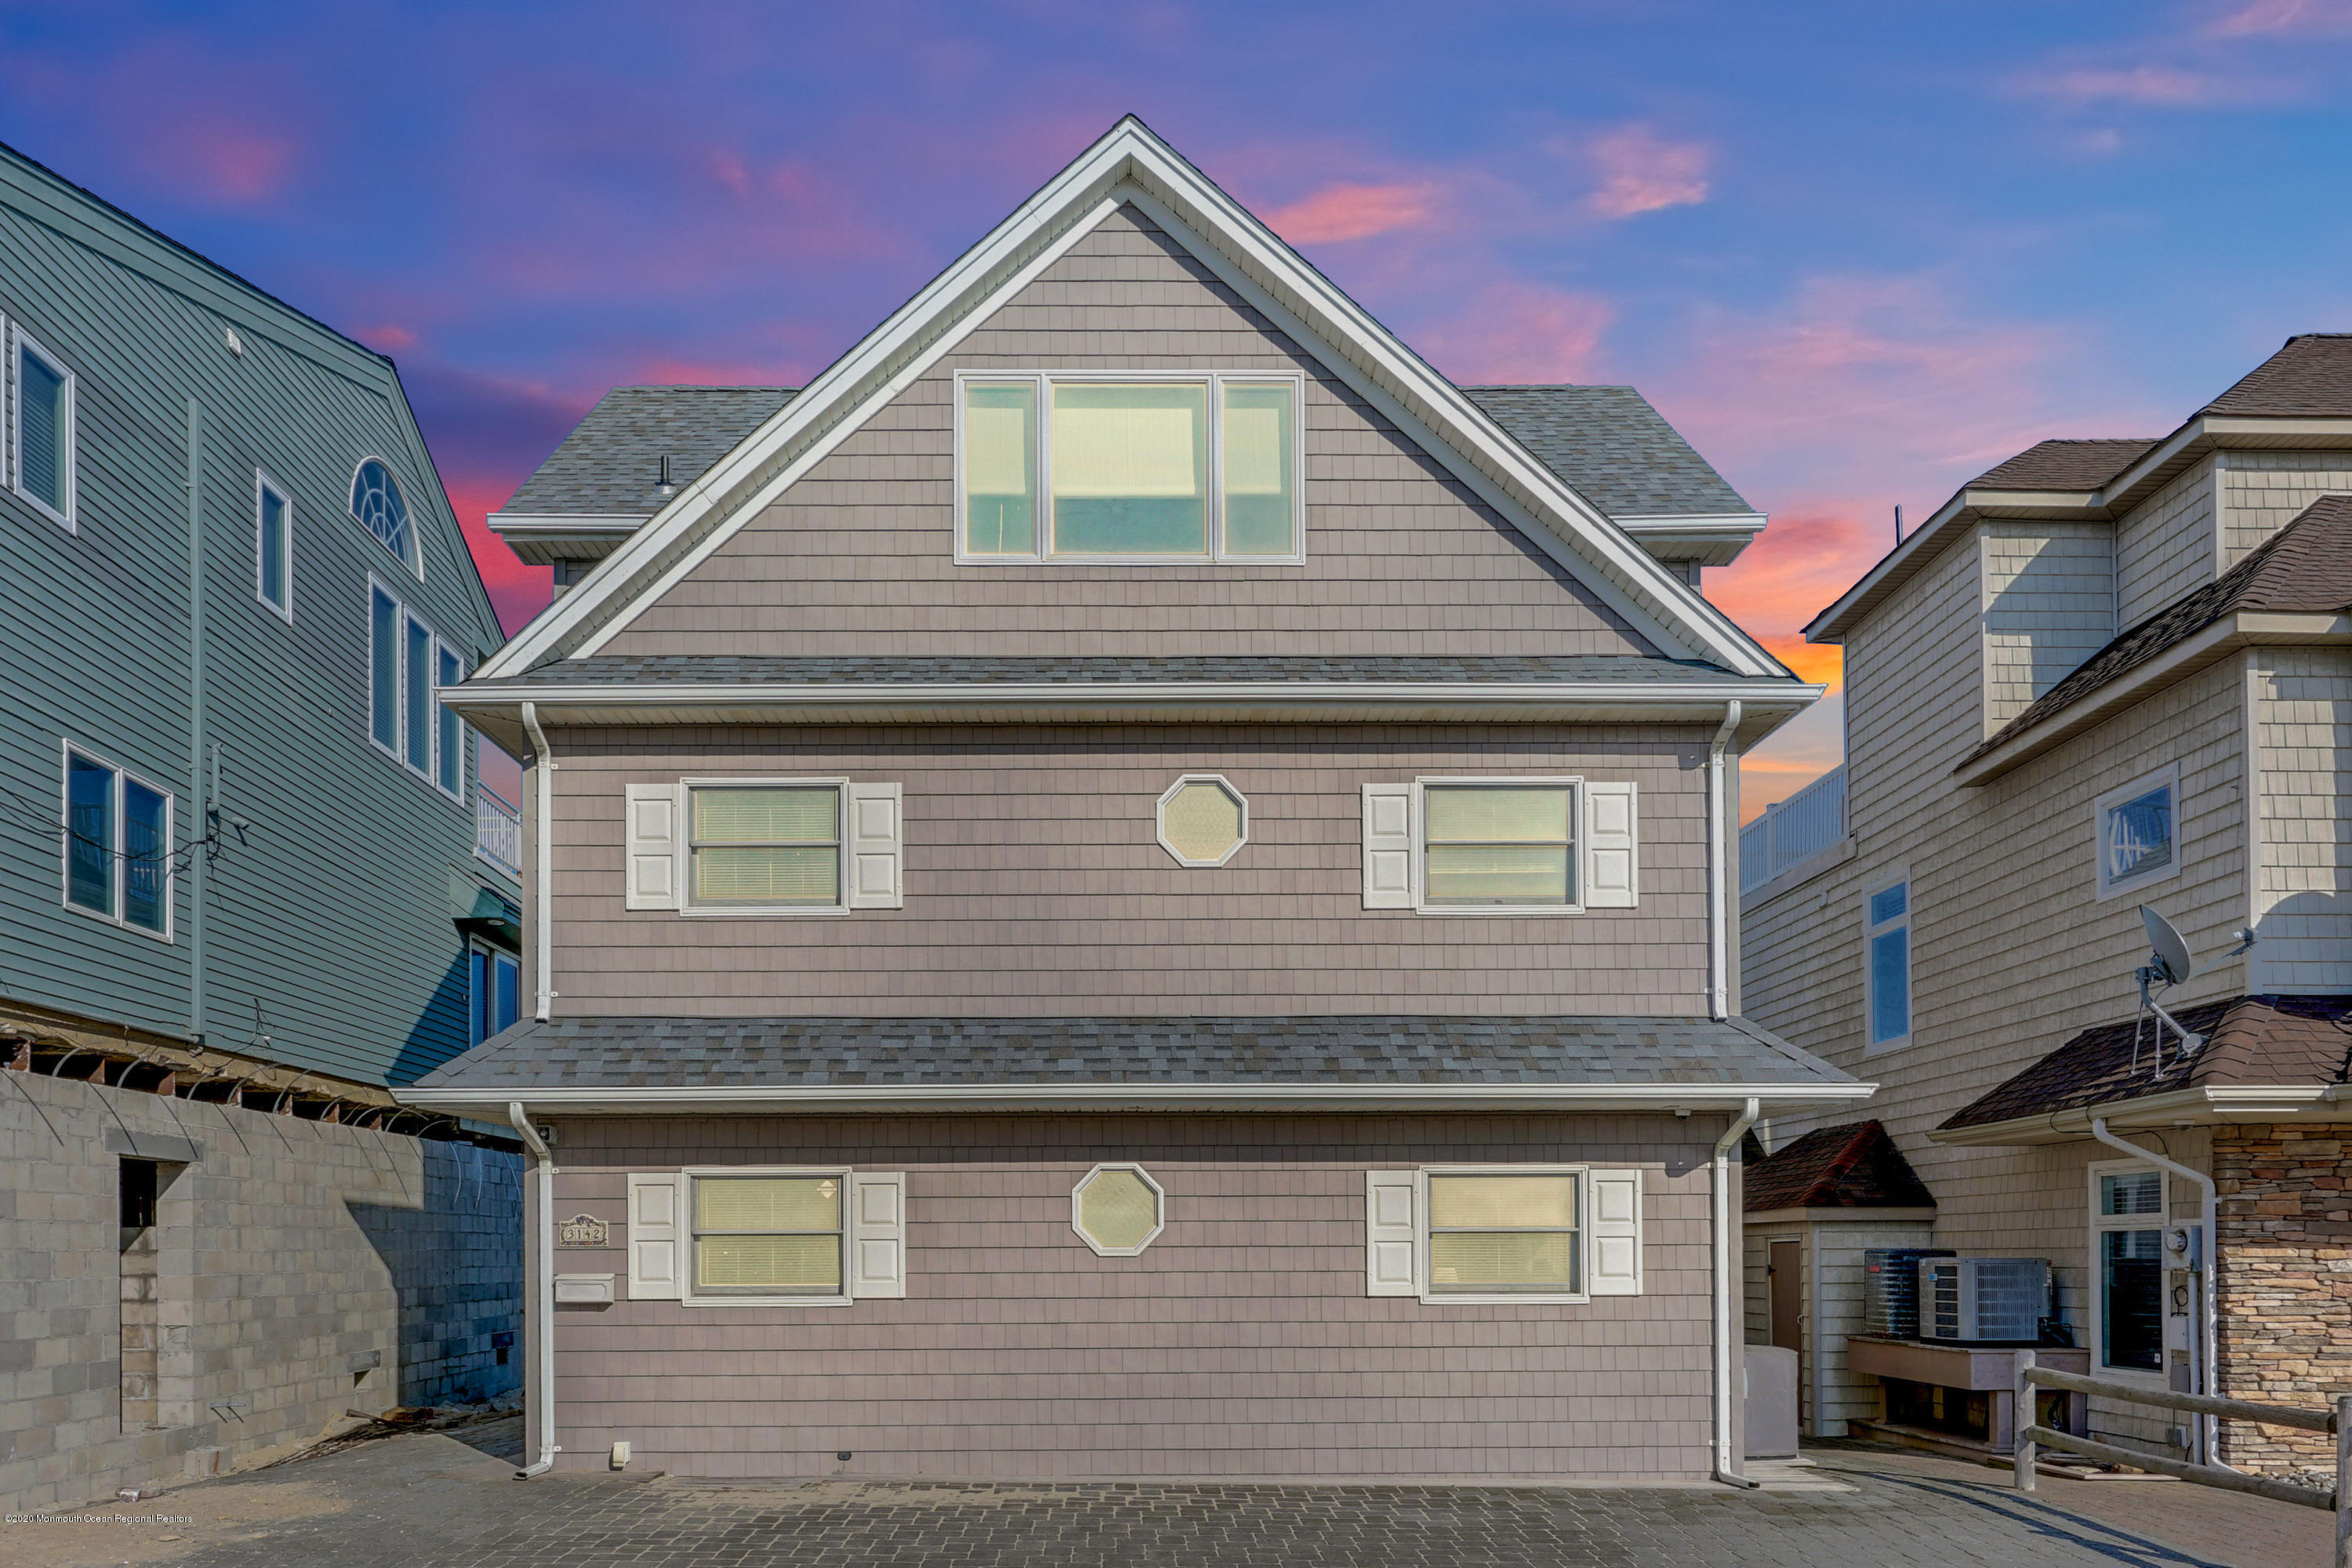 Photo of 3142 Ocean Road, Lavallette, NJ 08735